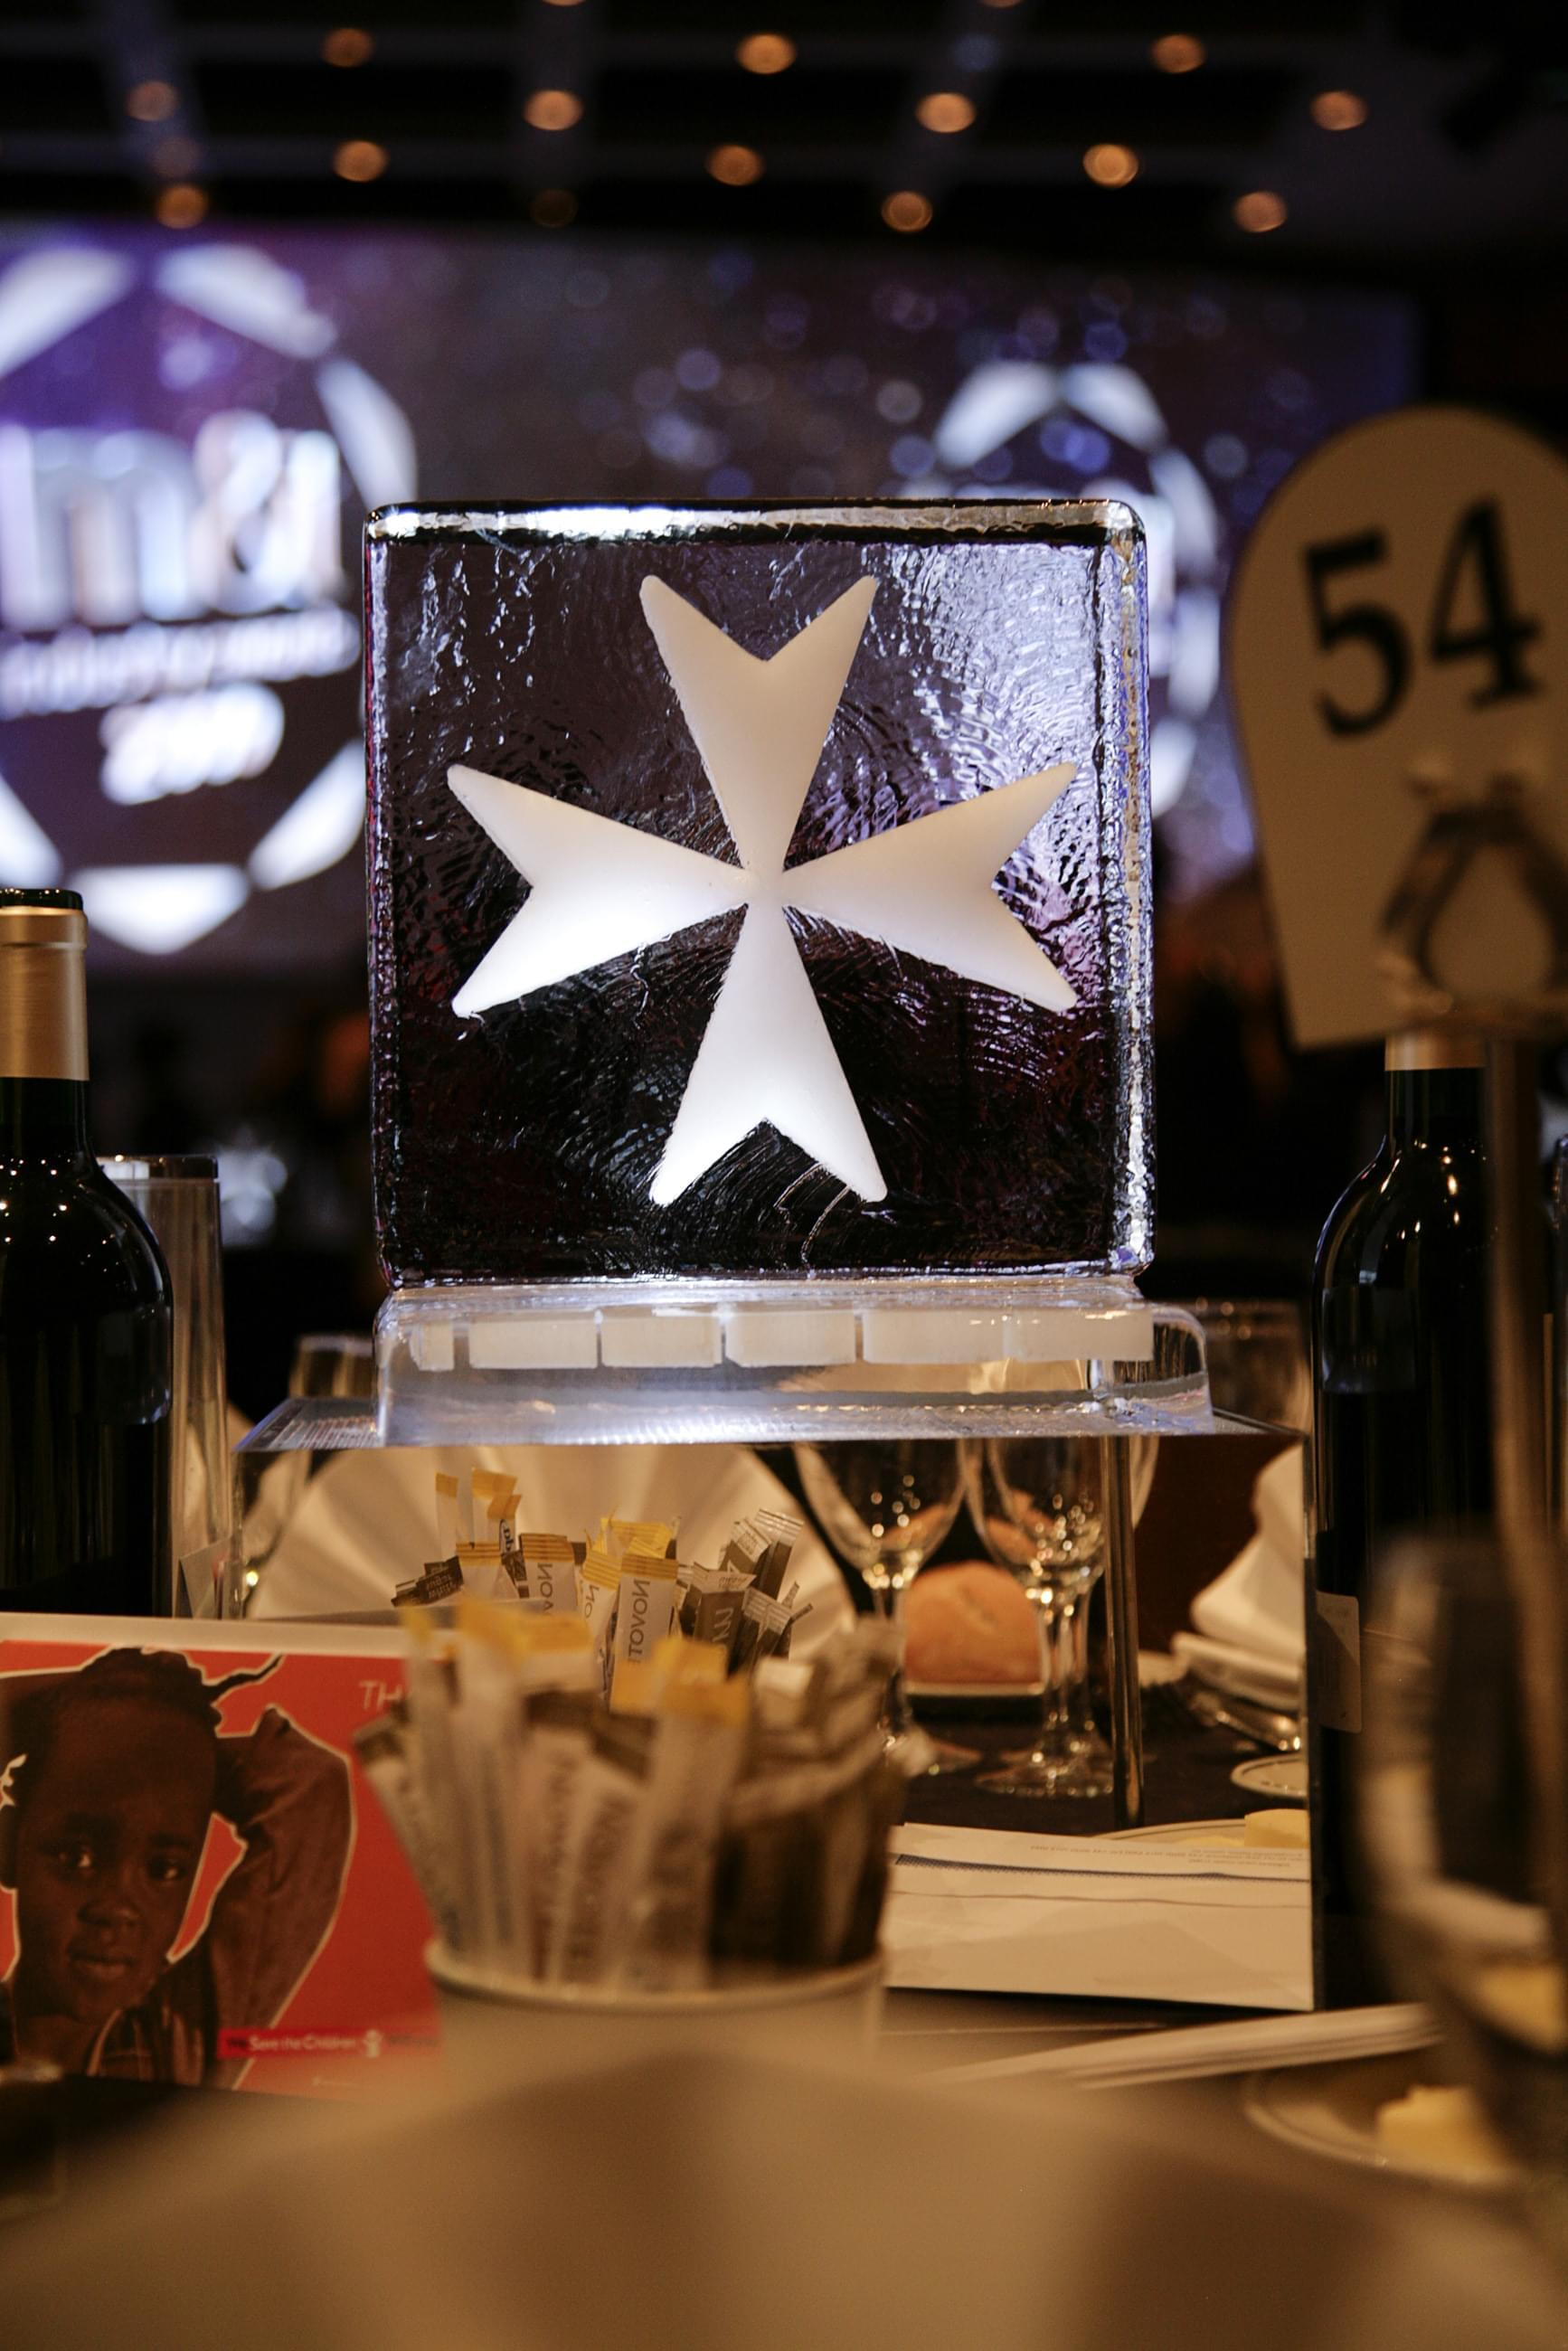 Engraved, Table centre, Star